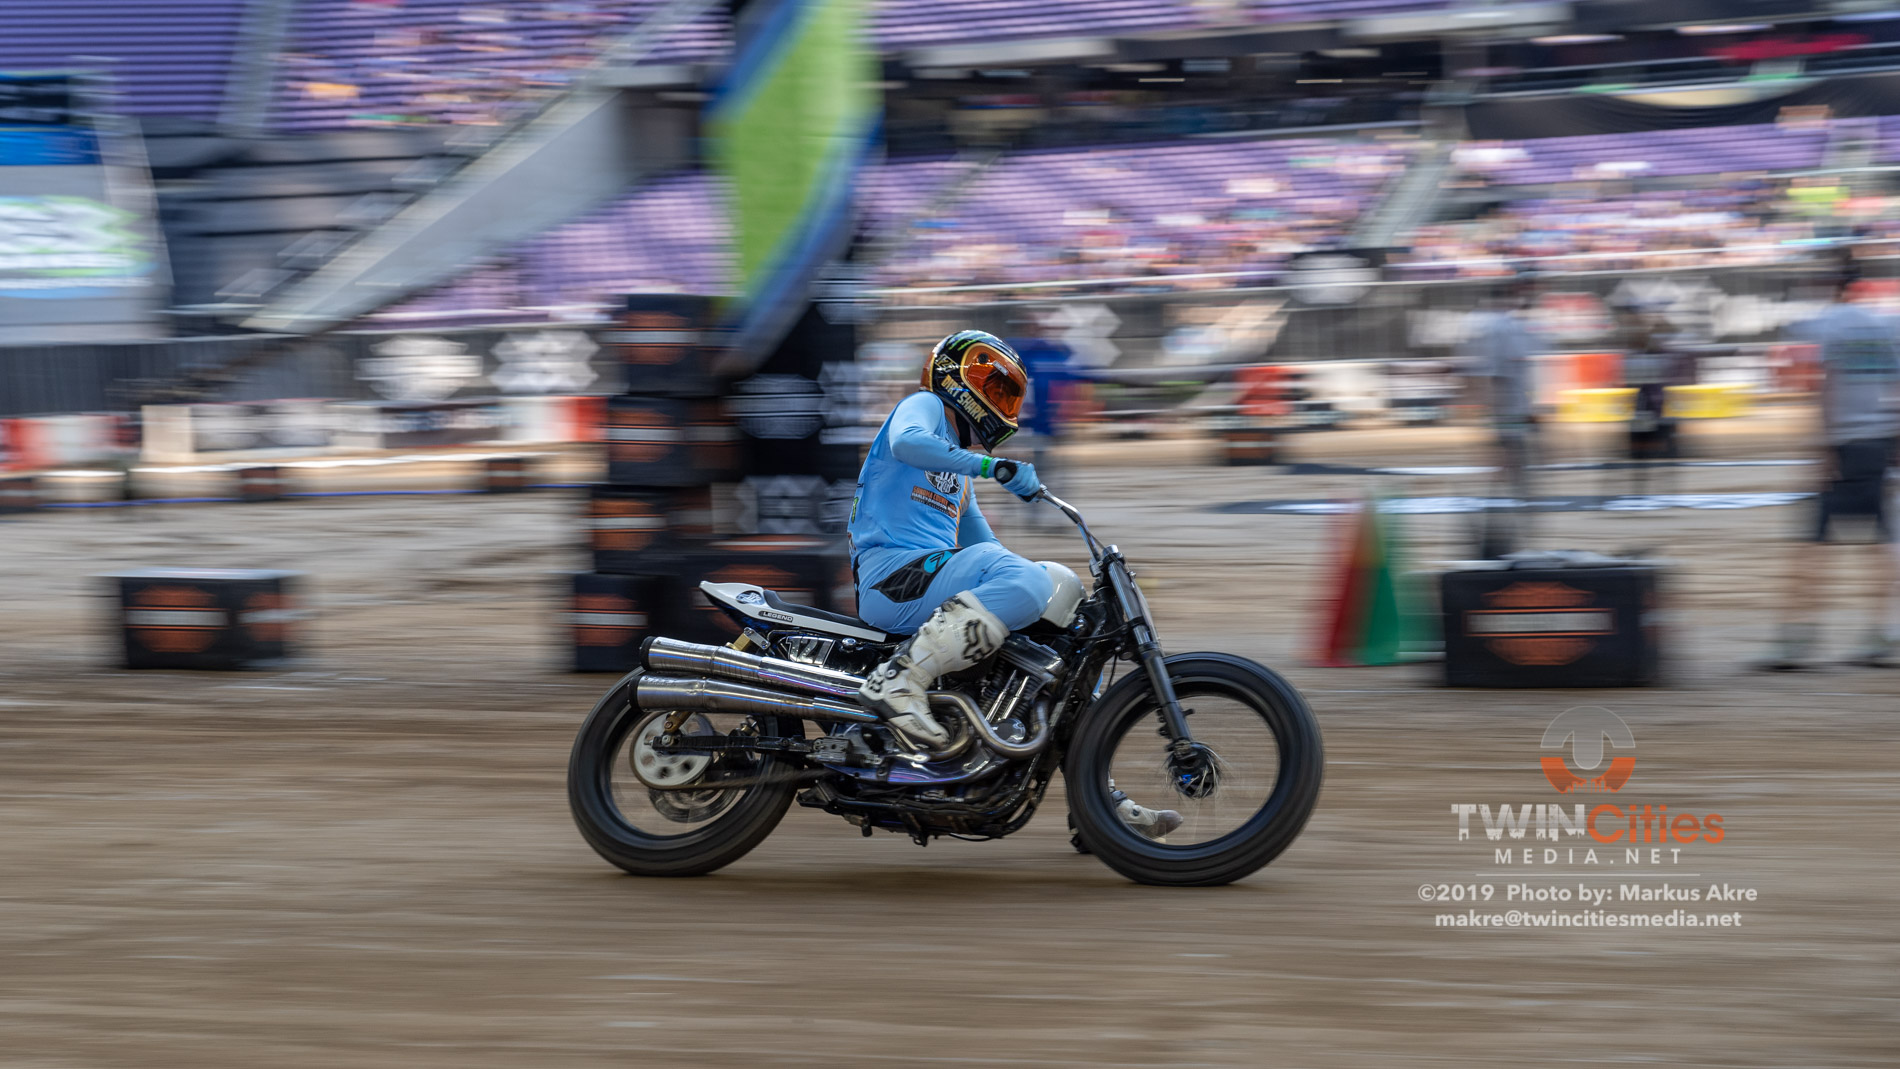 2019-X-Games-Day-4-Harley-Davidson-Hooligan-Racing-6